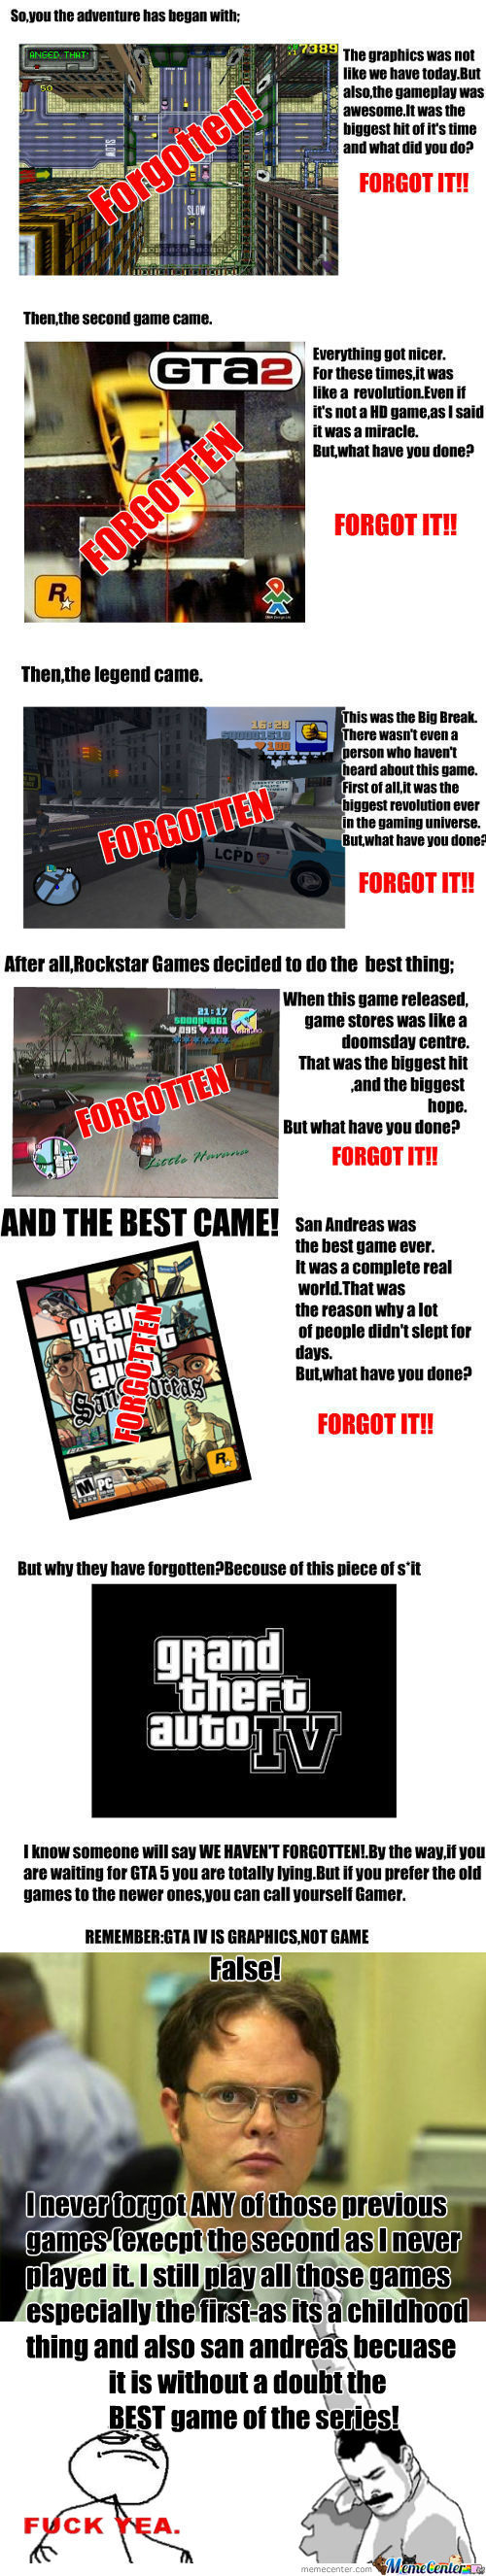 [RMX] Happy 10Th Anniversary Vice City